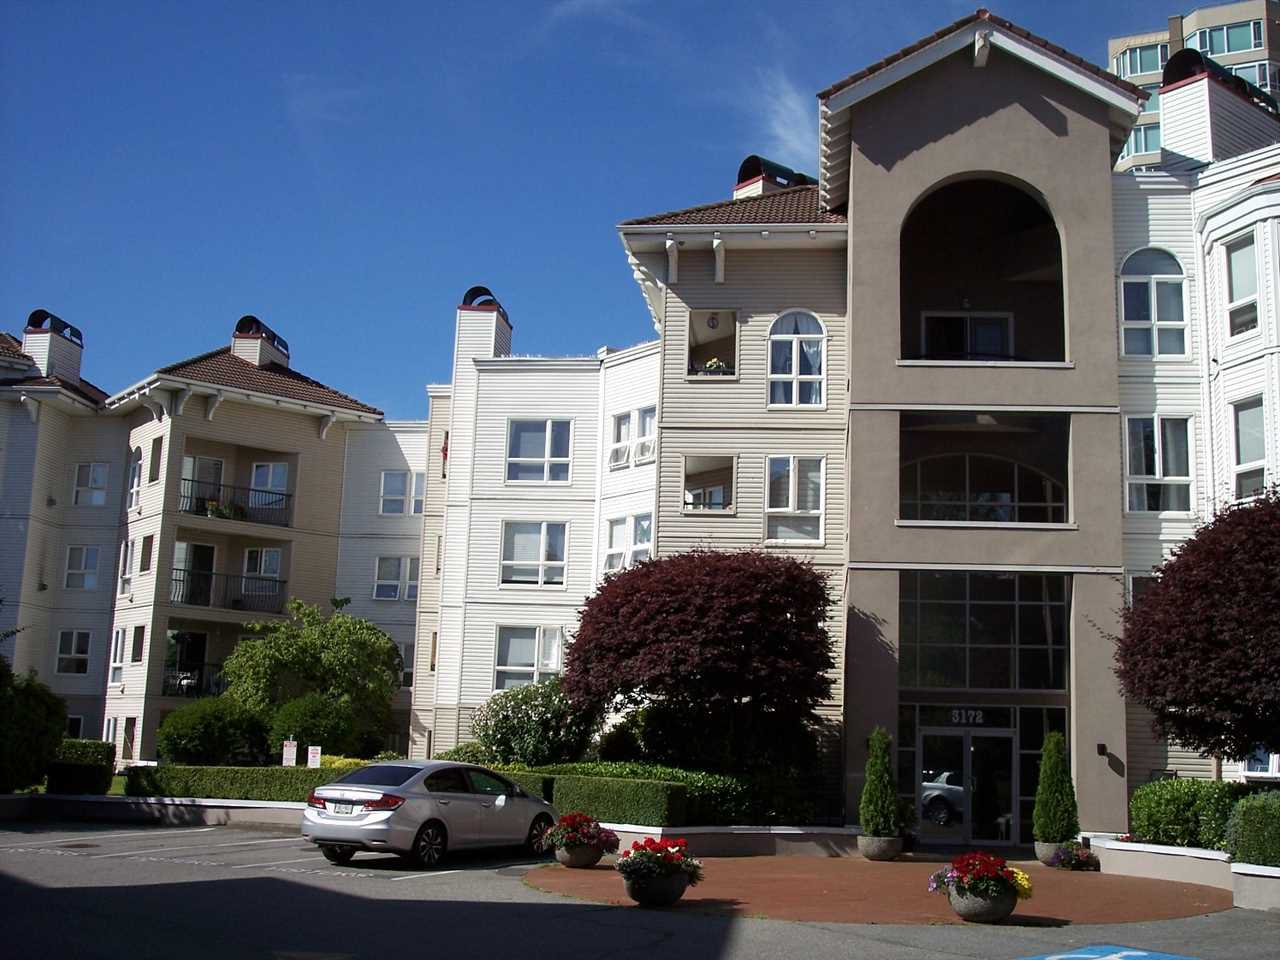 "Main Photo: 415 3172 GLADWIN Road in Abbotsford: Central Abbotsford Condo for sale in ""Regency Park"" : MLS®# R2480665"